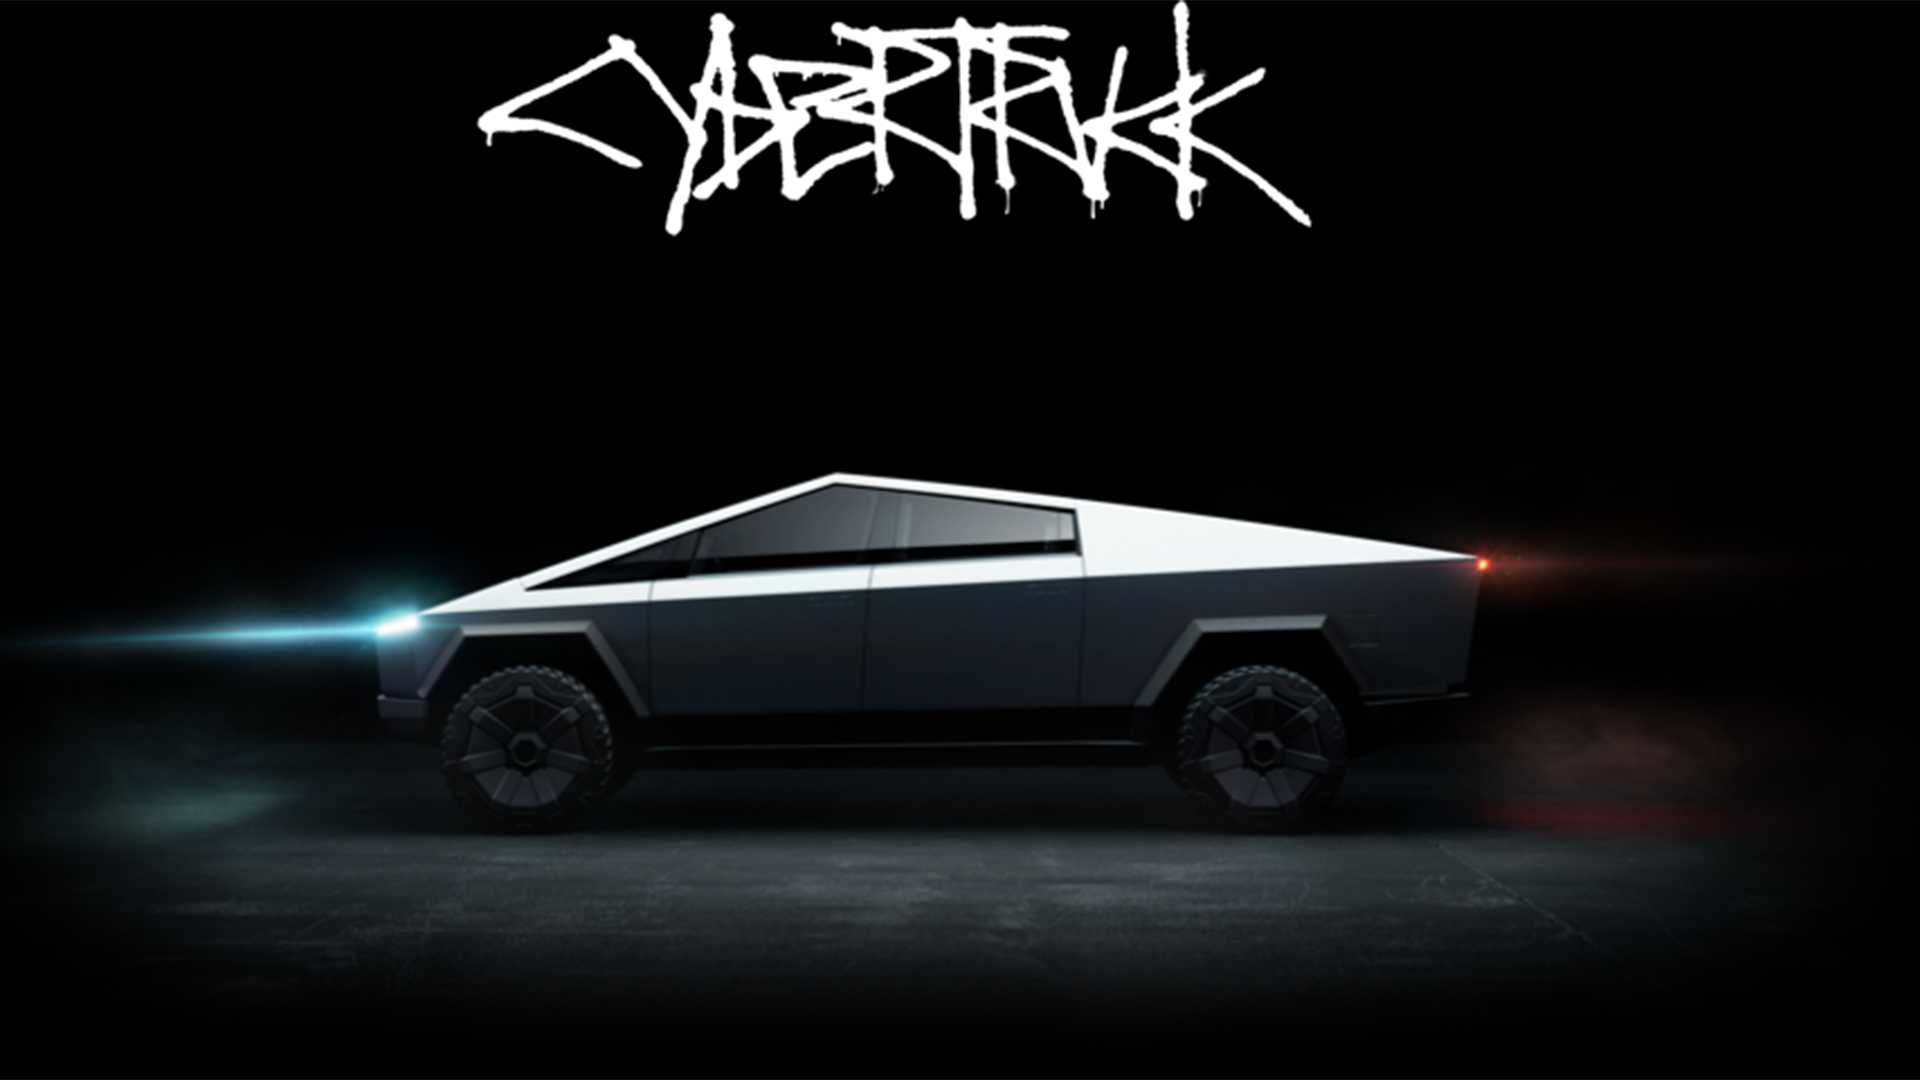 CyberTruck cover image